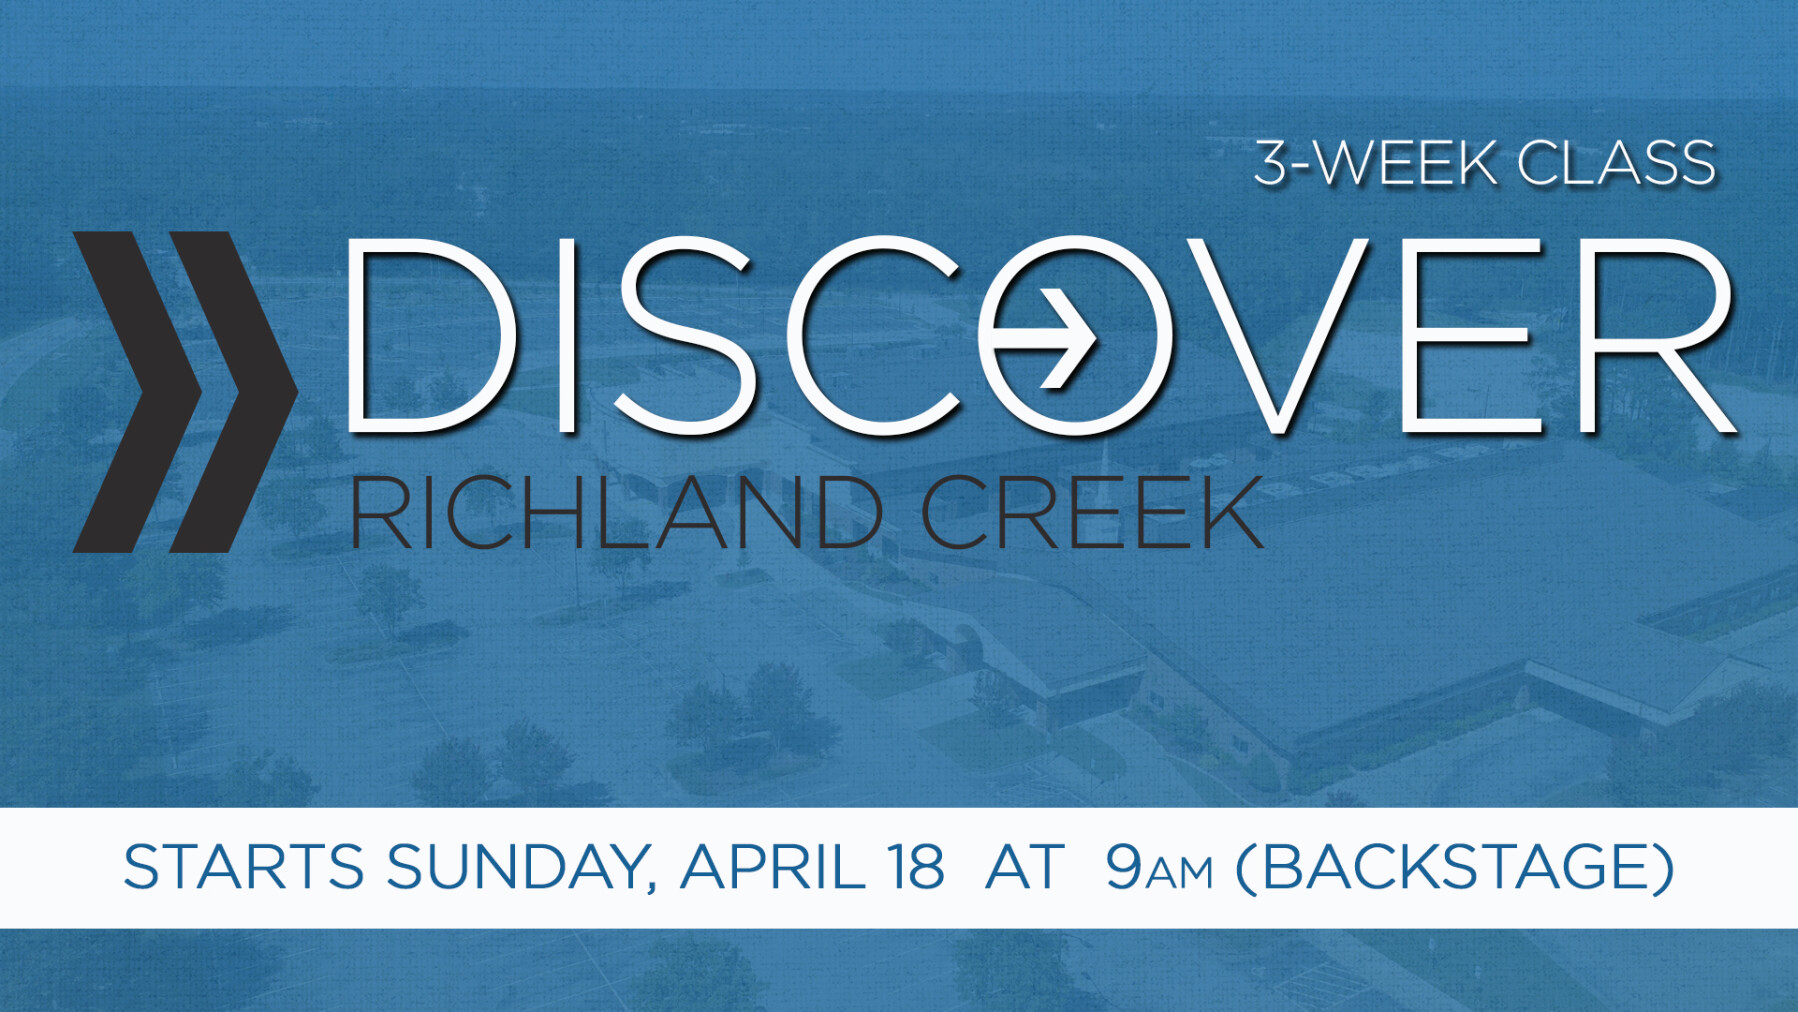 Discover Richland Creek